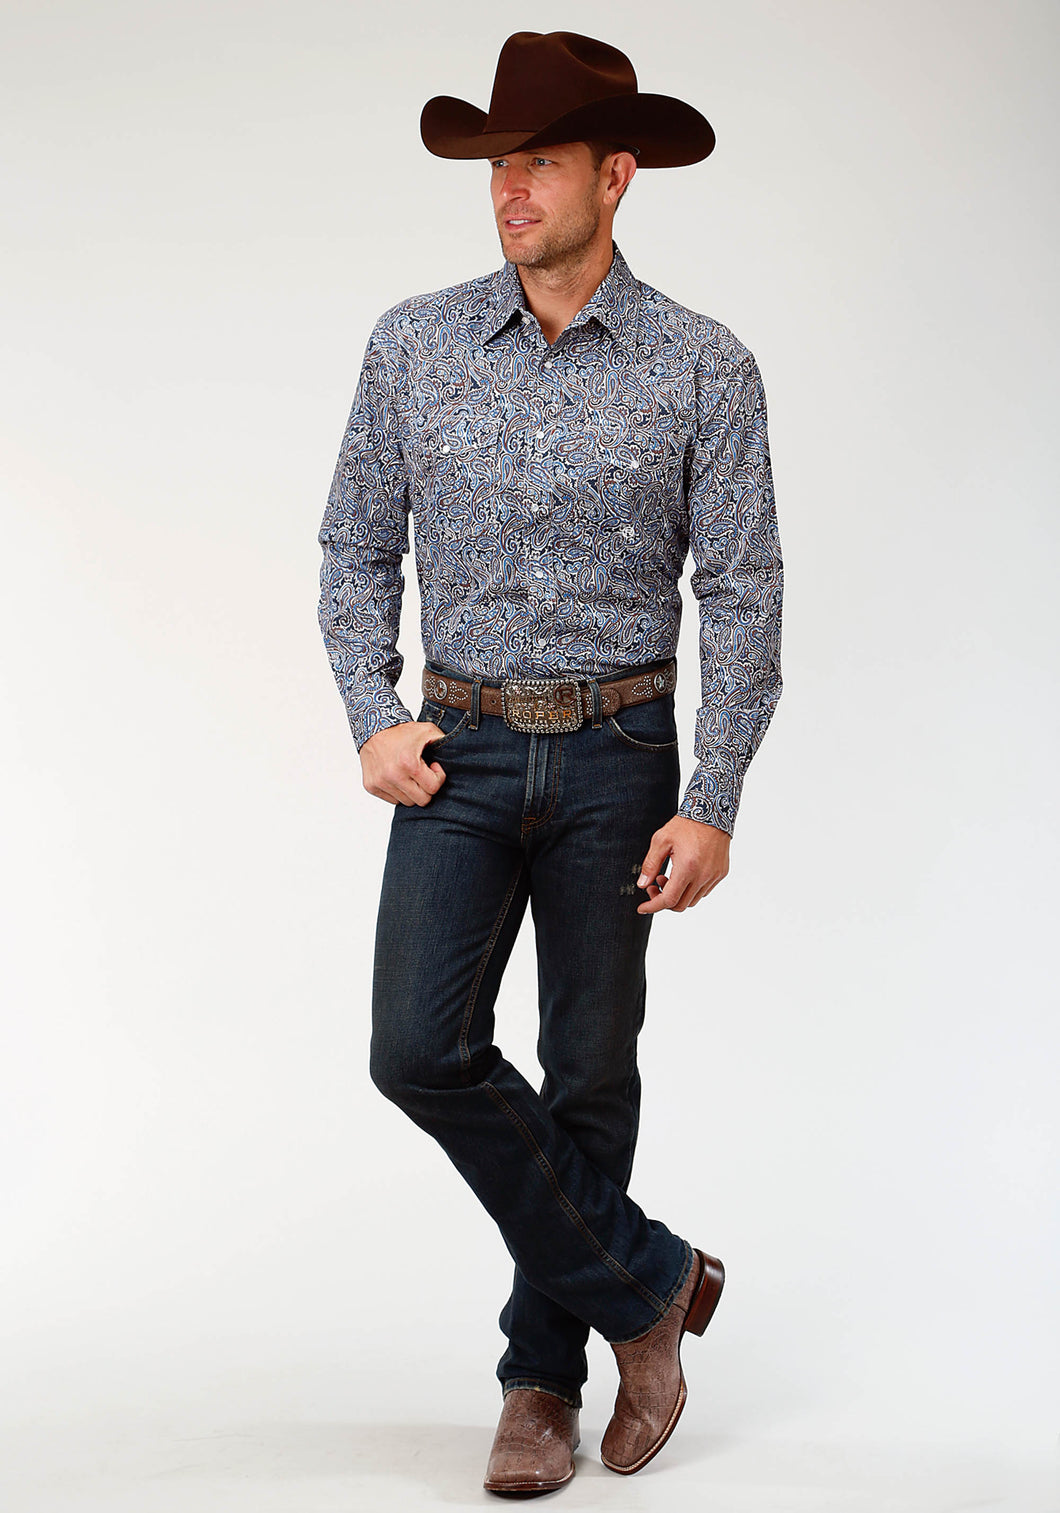 Men's Amarillo Collection- Indigo Trail Amarillo Mens Long Sleeve Shirt 1518 Layered Paisley